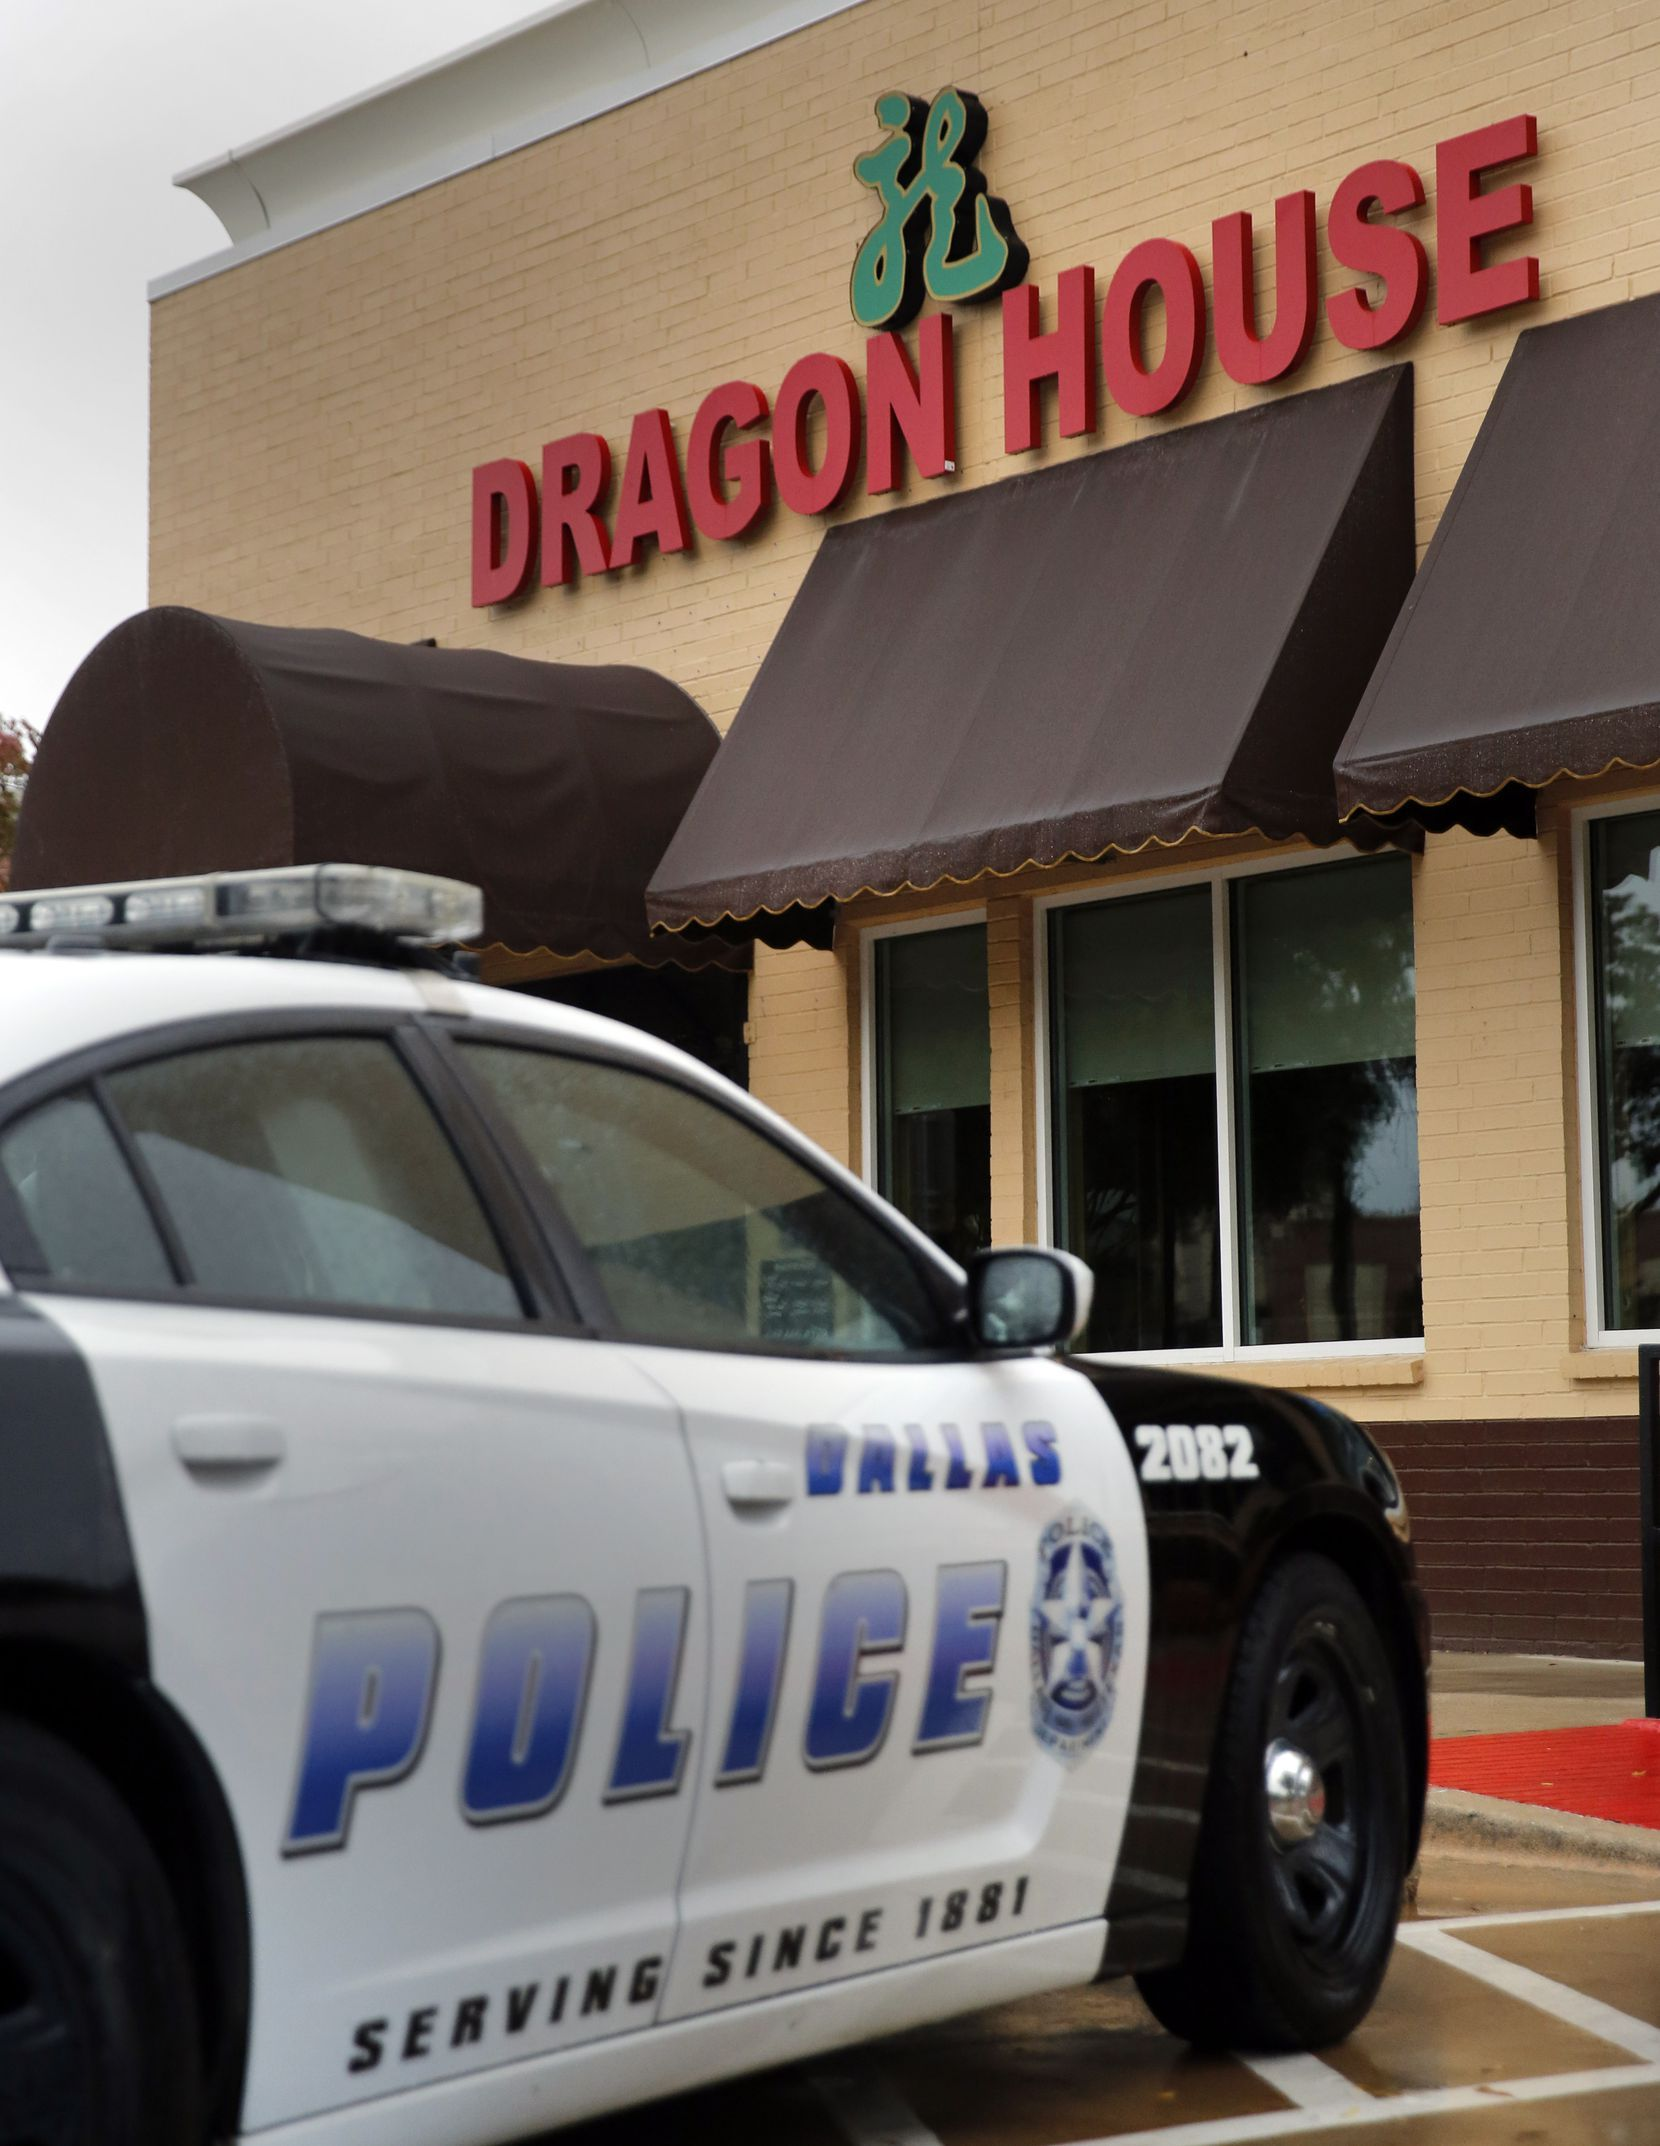 Dragon house a new threestar chinese restaurant in